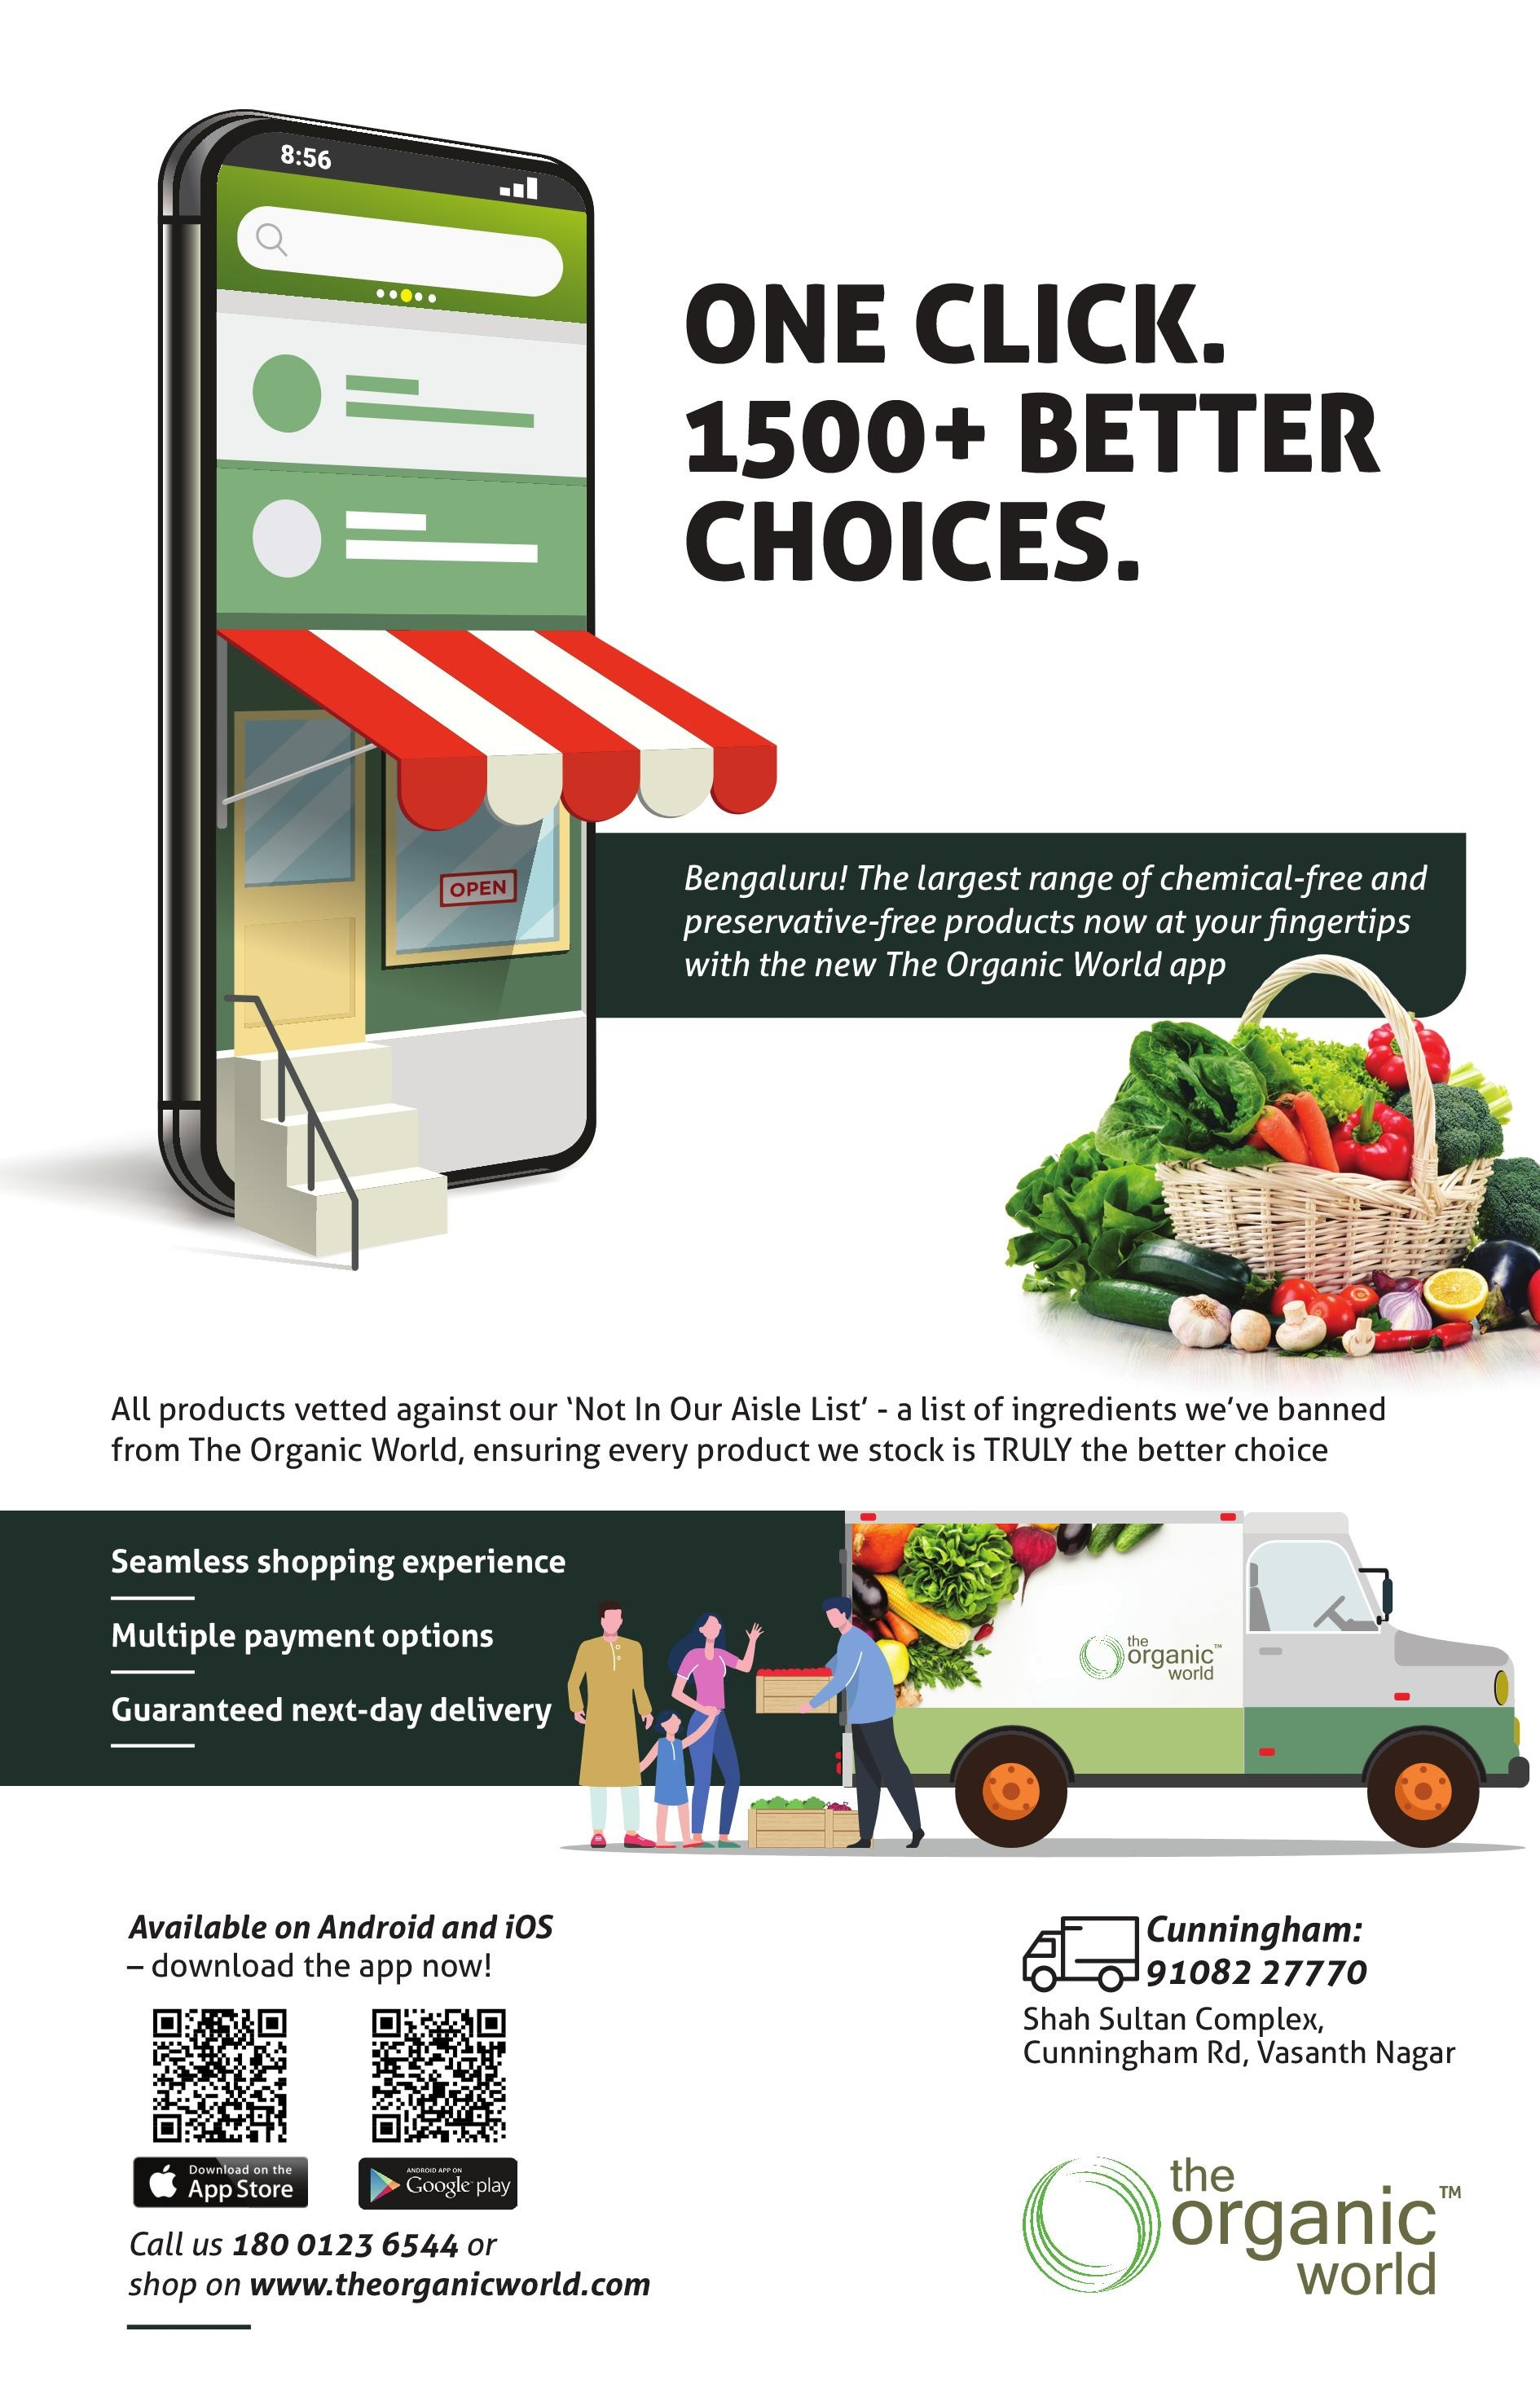 One Click 1500+ Better Choices